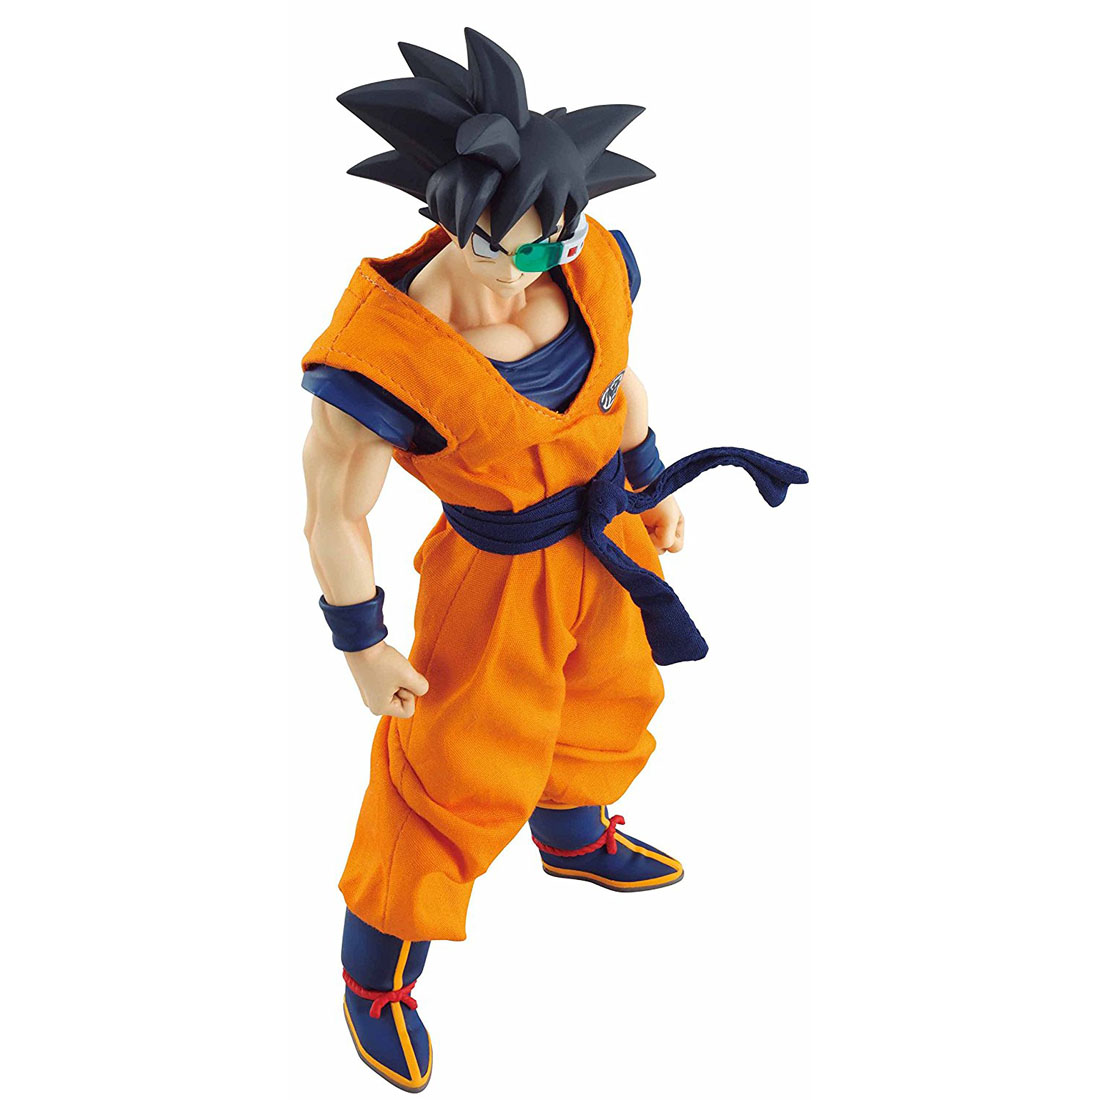 Dragon Ball Figure Dimensions Of Dragon Ball Figure Son